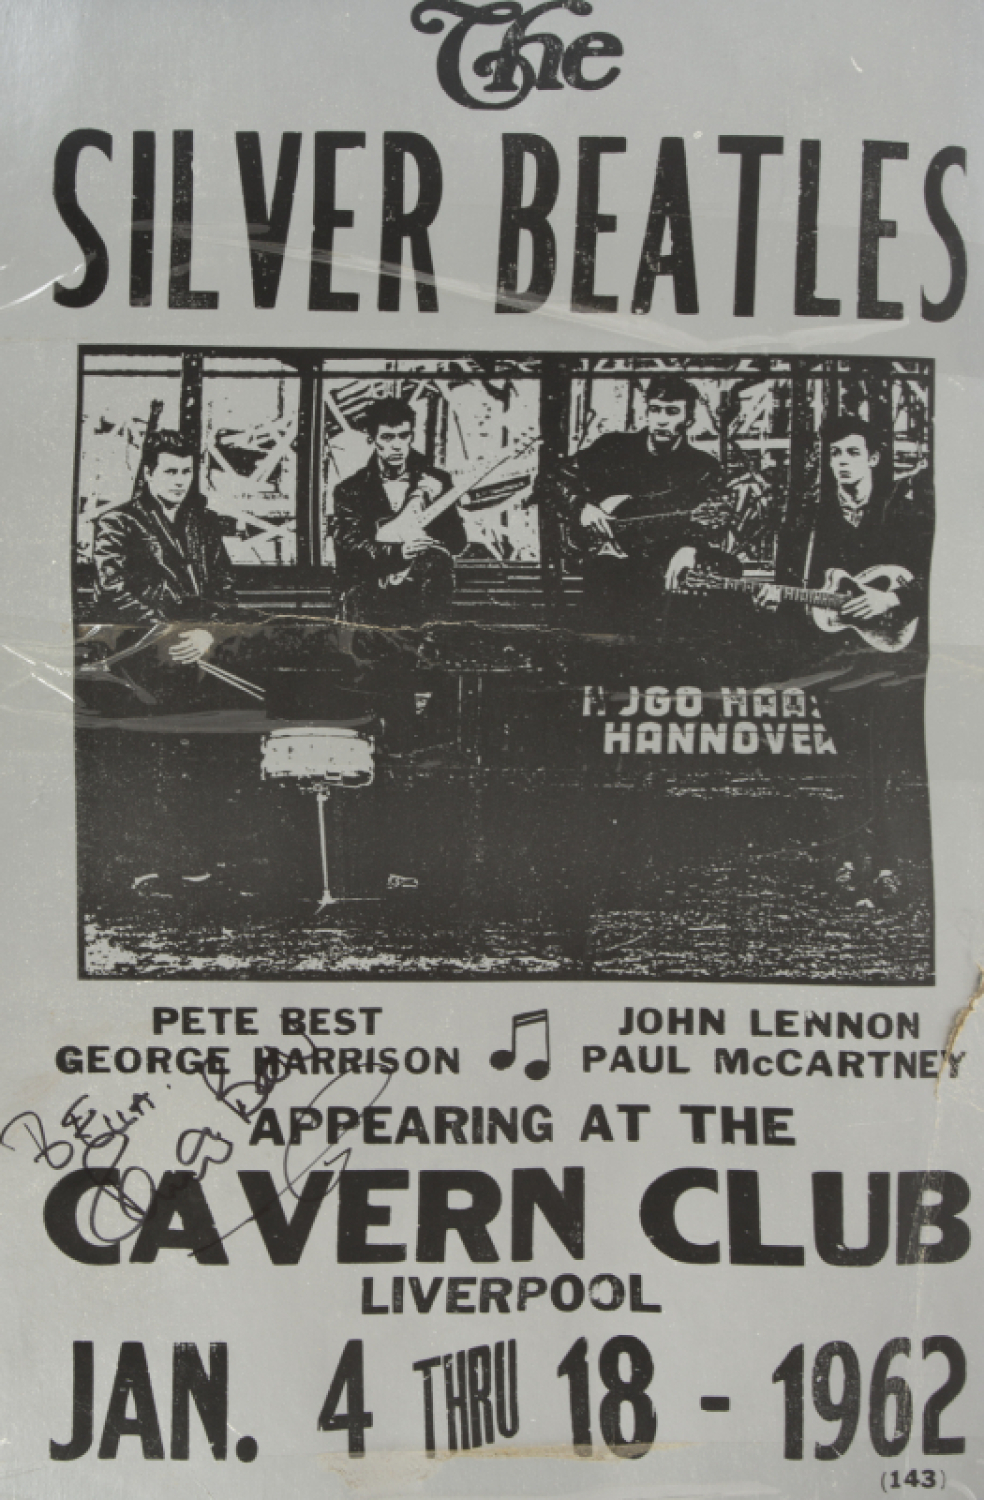 pete best signed beatles reproduction